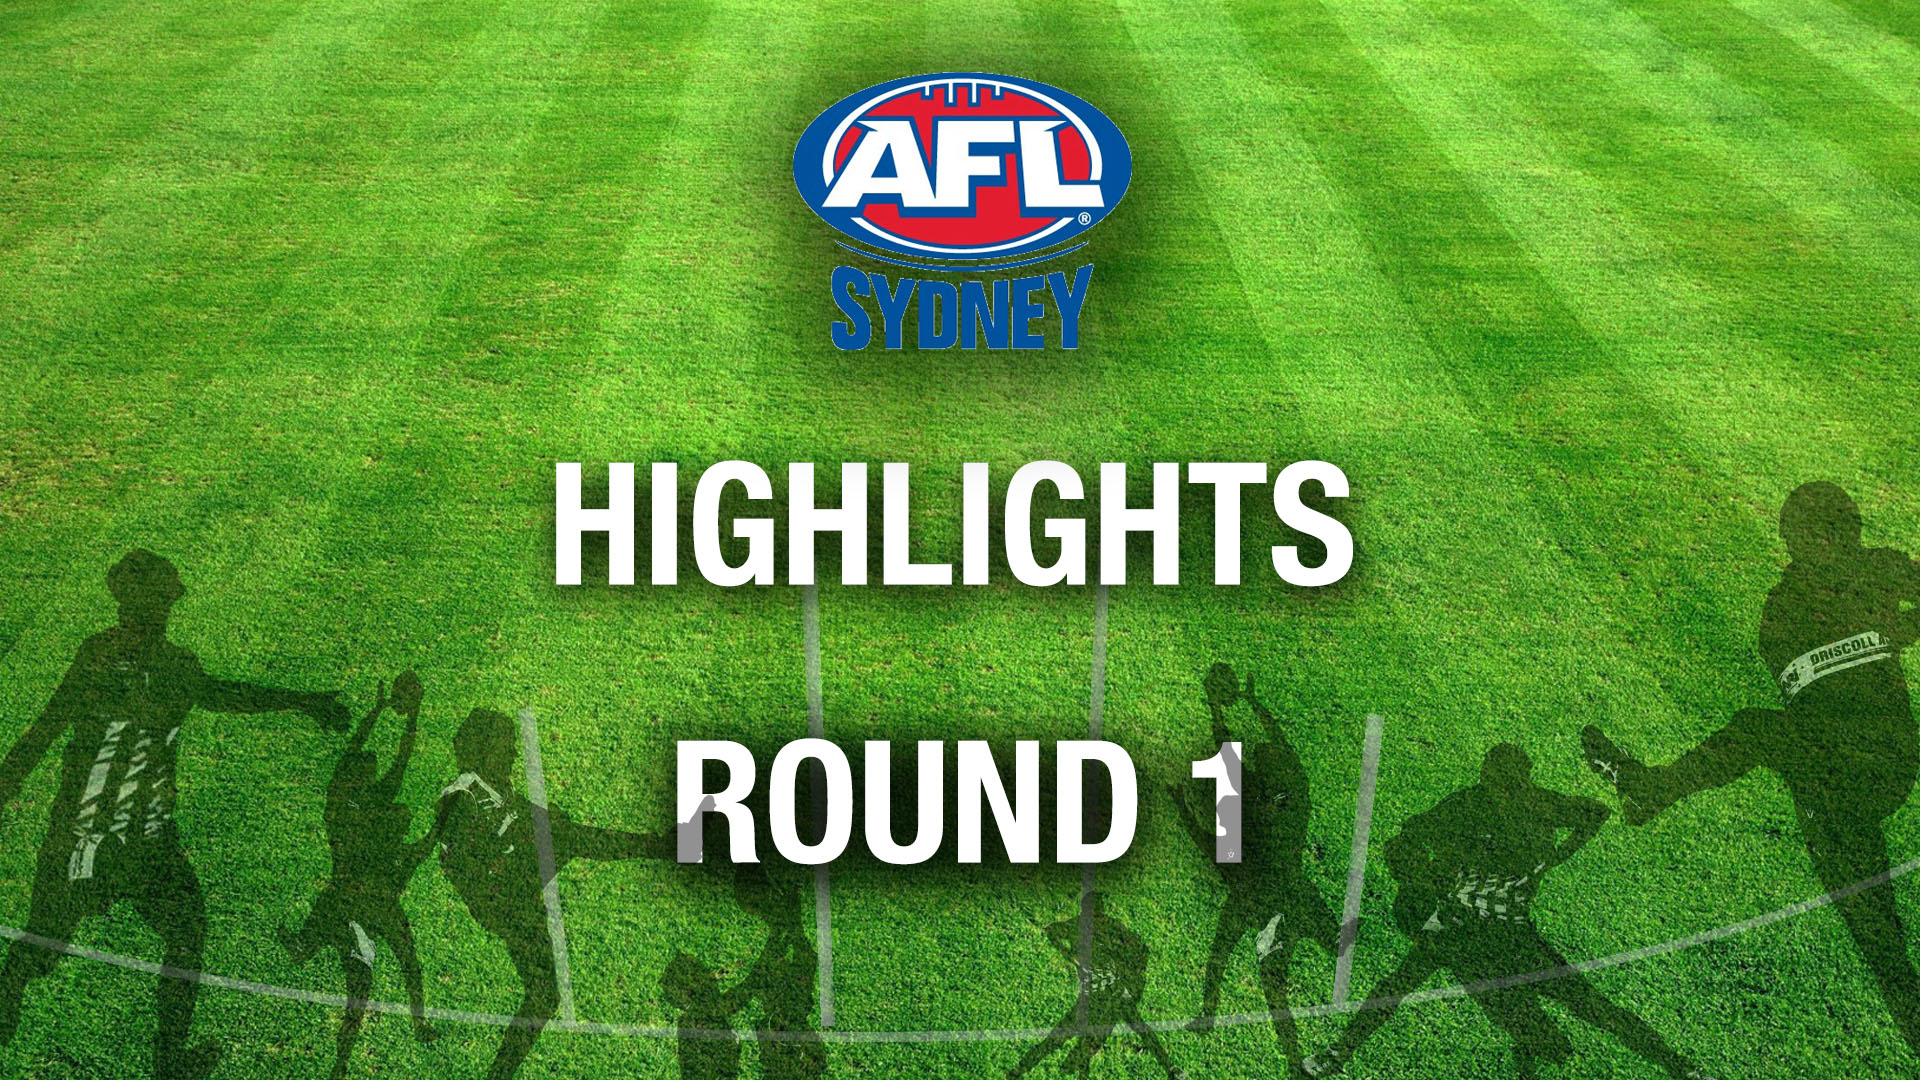 AFL SYDNEY ROUND 1 HIGHLIGHTS